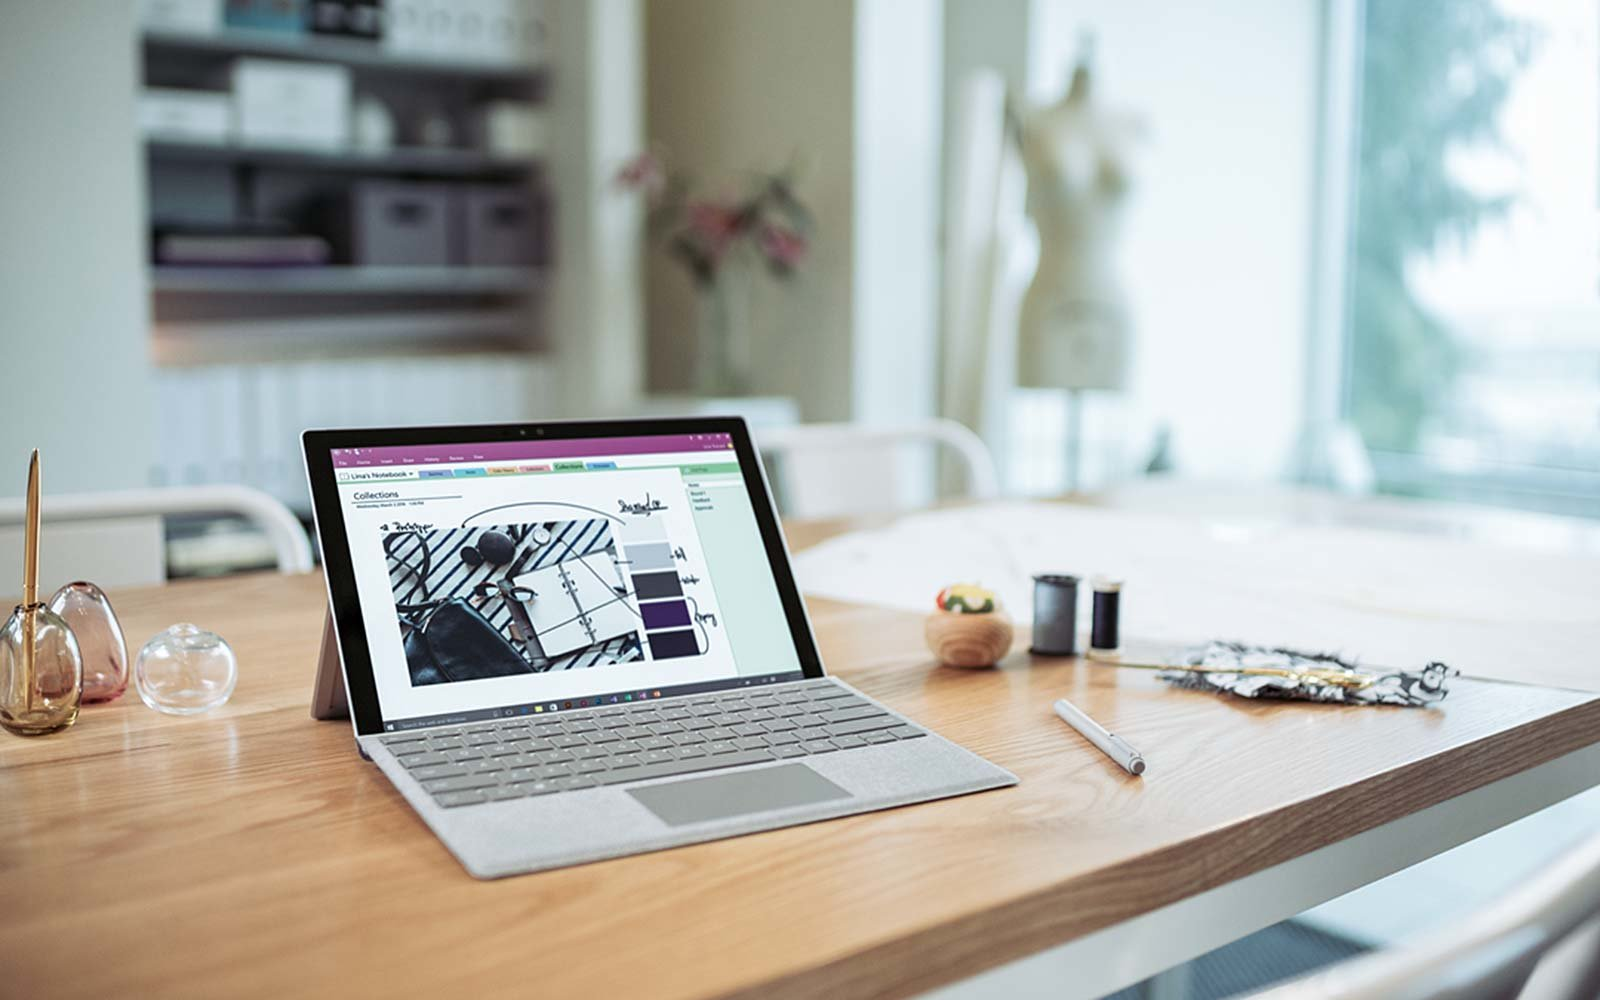 Microsoft Surface Tablet Laptop Computer